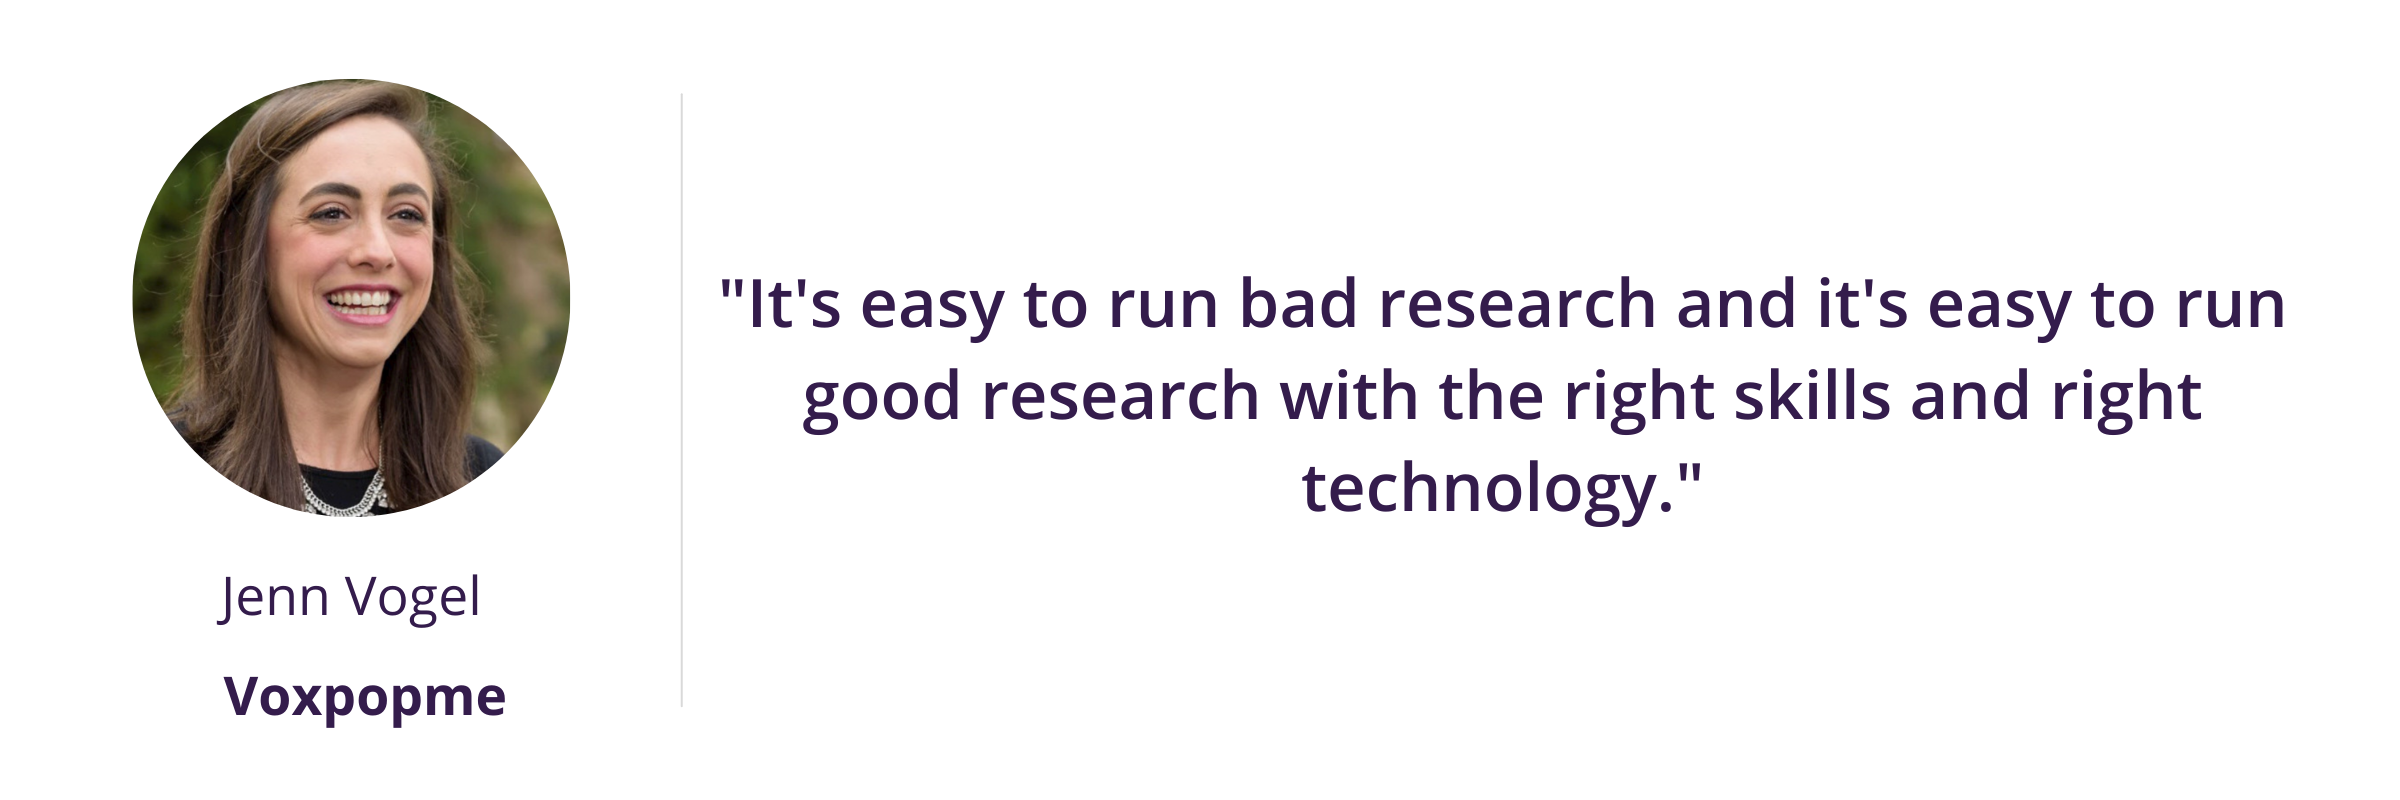 """""""It's easy to run bad research and it's easy to run good research with the right skills and right technology."""""""